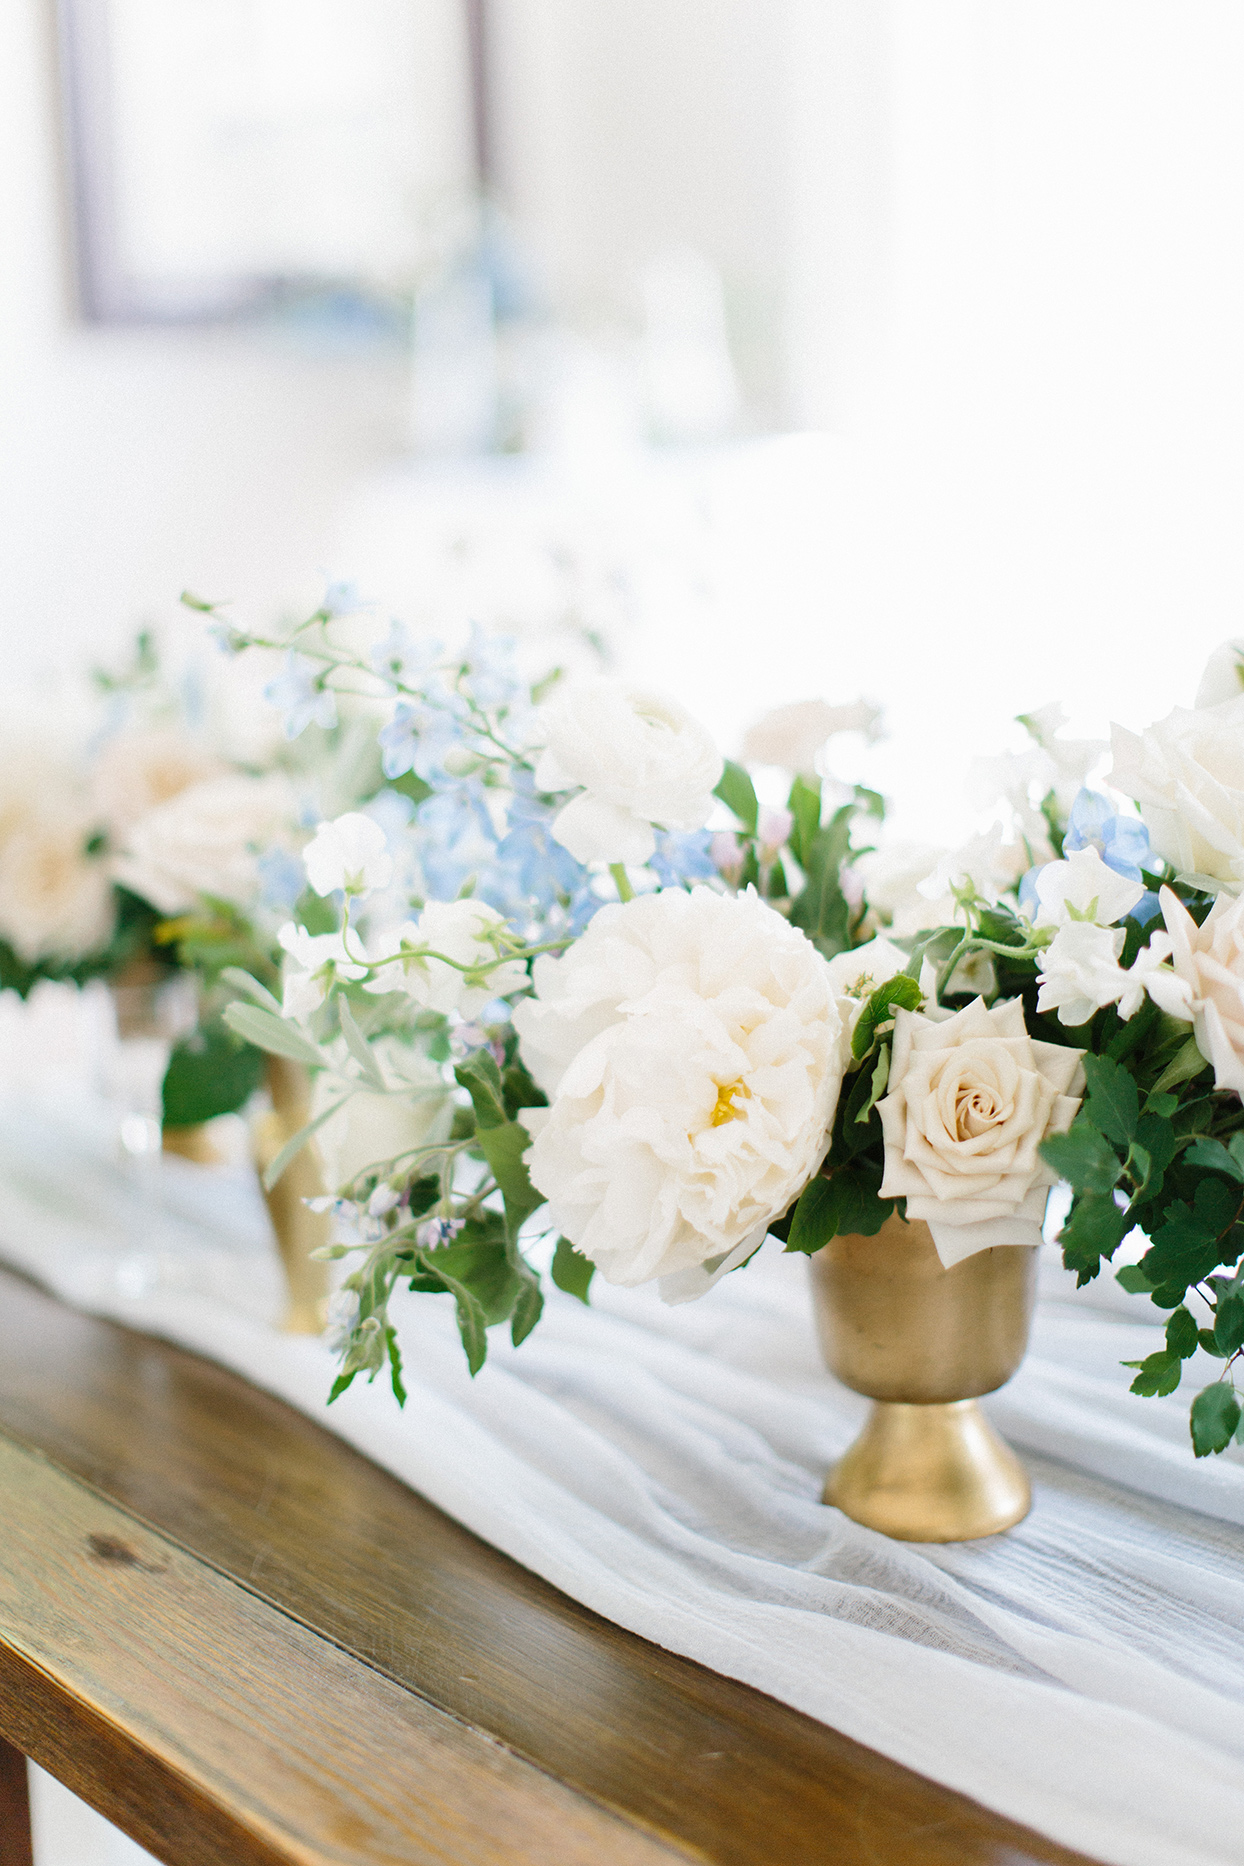 gold vase filled with white and blue flowers and greenery